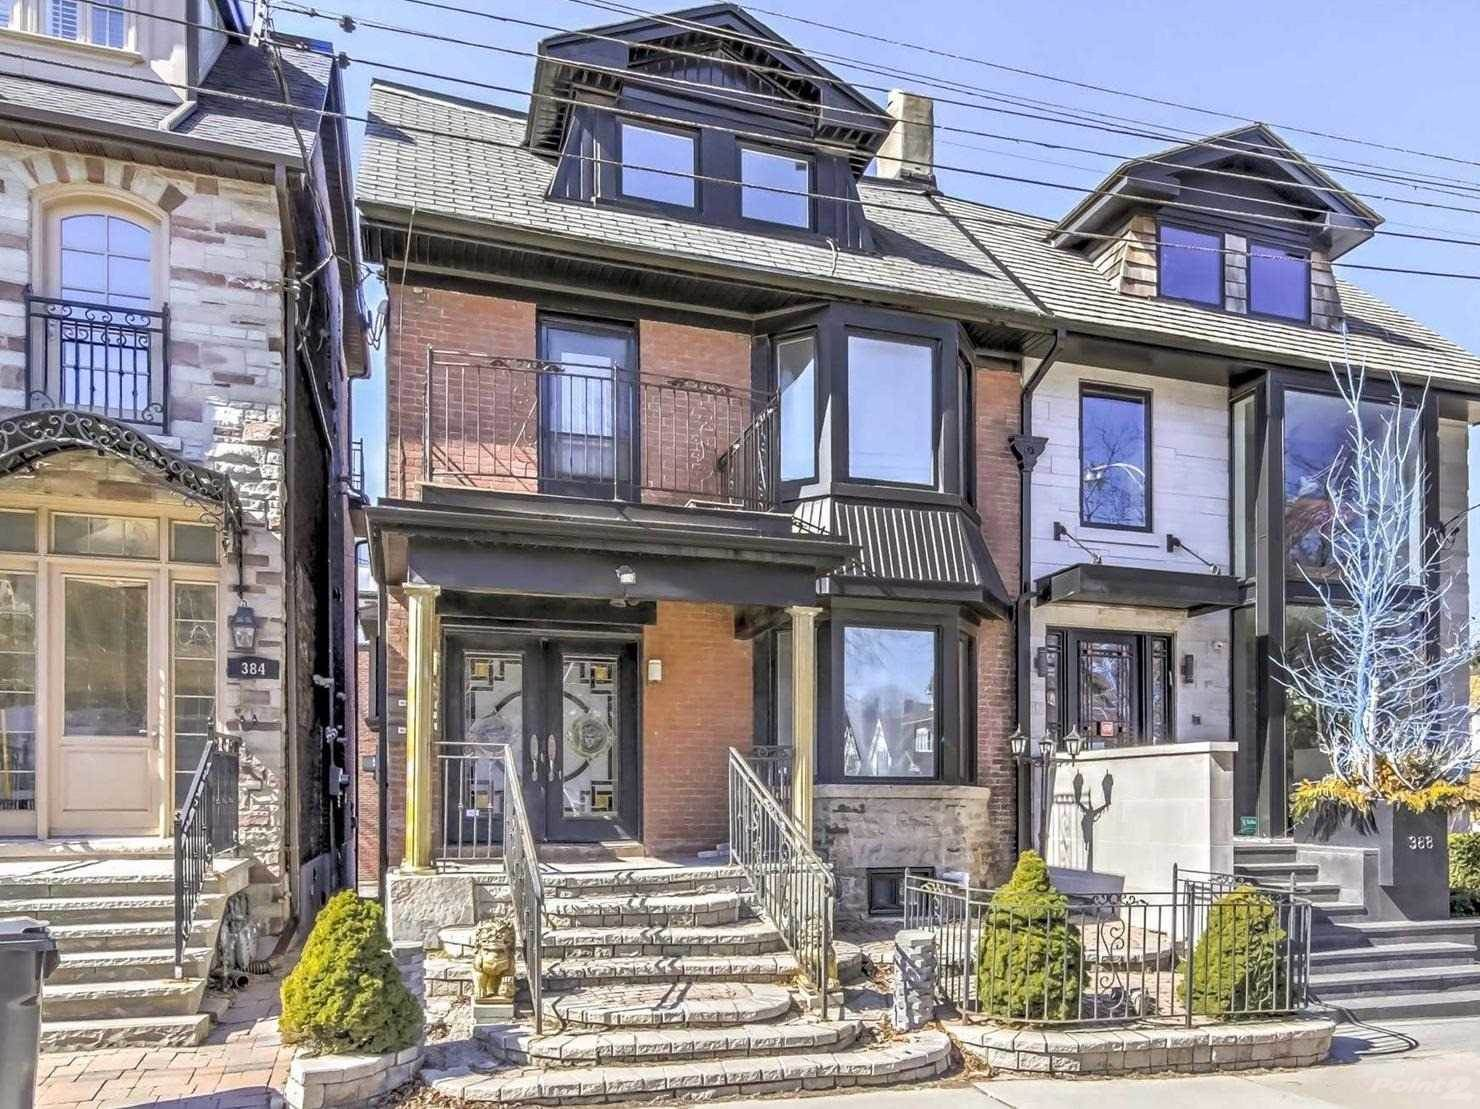 Residential For Sale in 386 Spadina Rd Toronto ON CA, Toronto, Ontario   , Canada